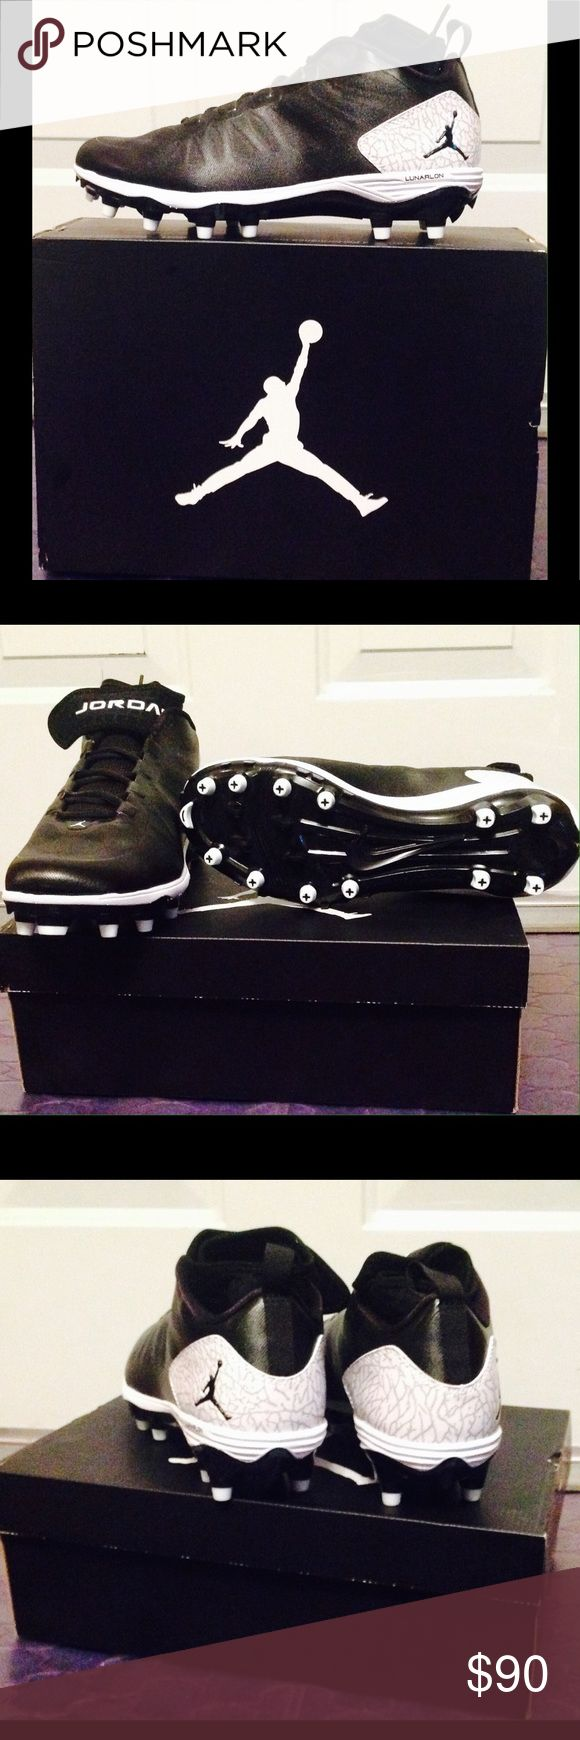 Nike Air Jordan Pro Dominate TD 2 Football Cleats Black Jordan football cleats. This item has never been worn. Brand new in its original box. Air Jordan Shoes Athletic Shoes